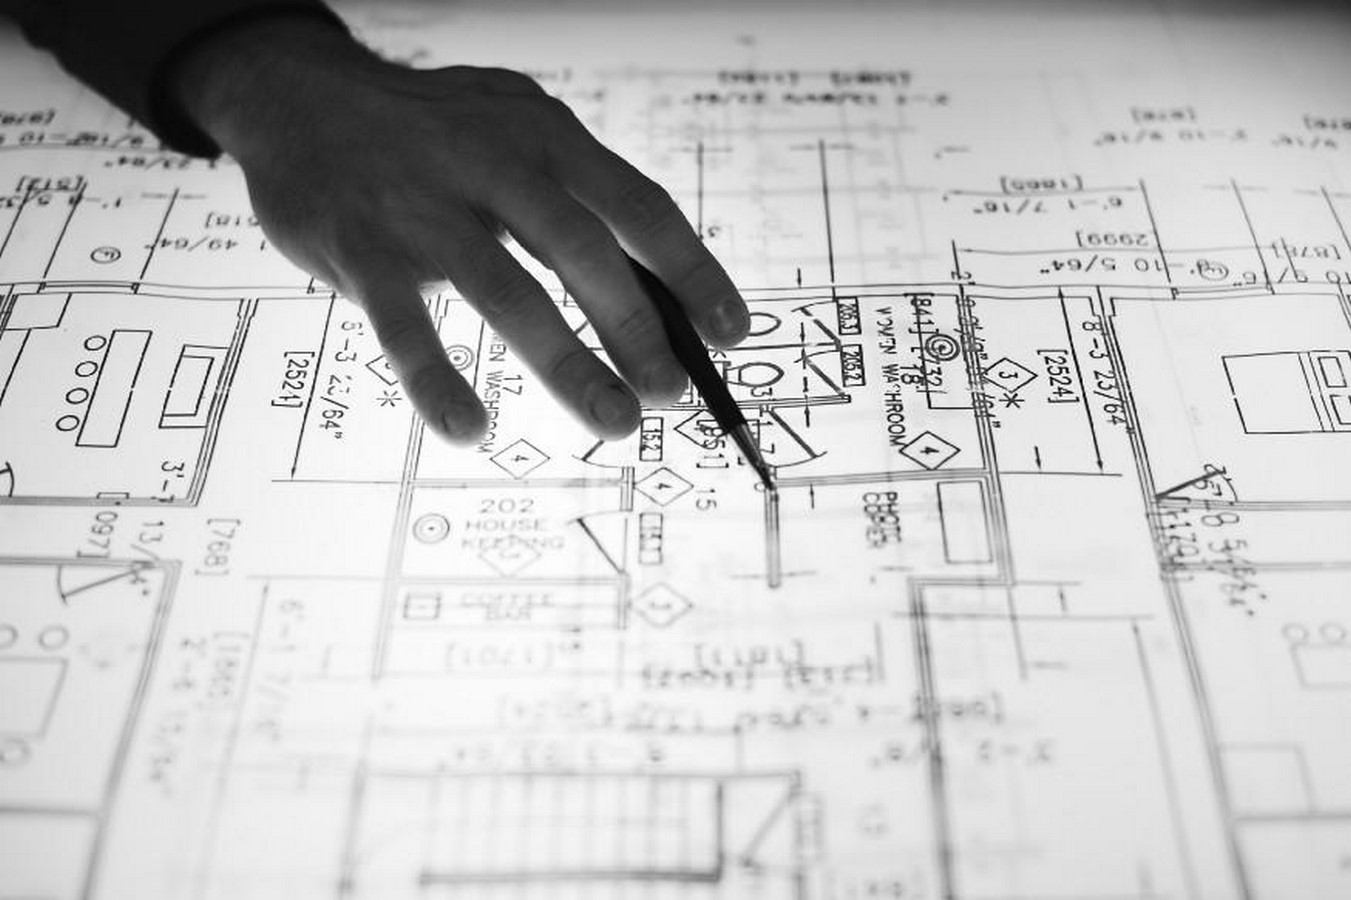 Addressing the gap between architectural and engineering practices - Sheet4